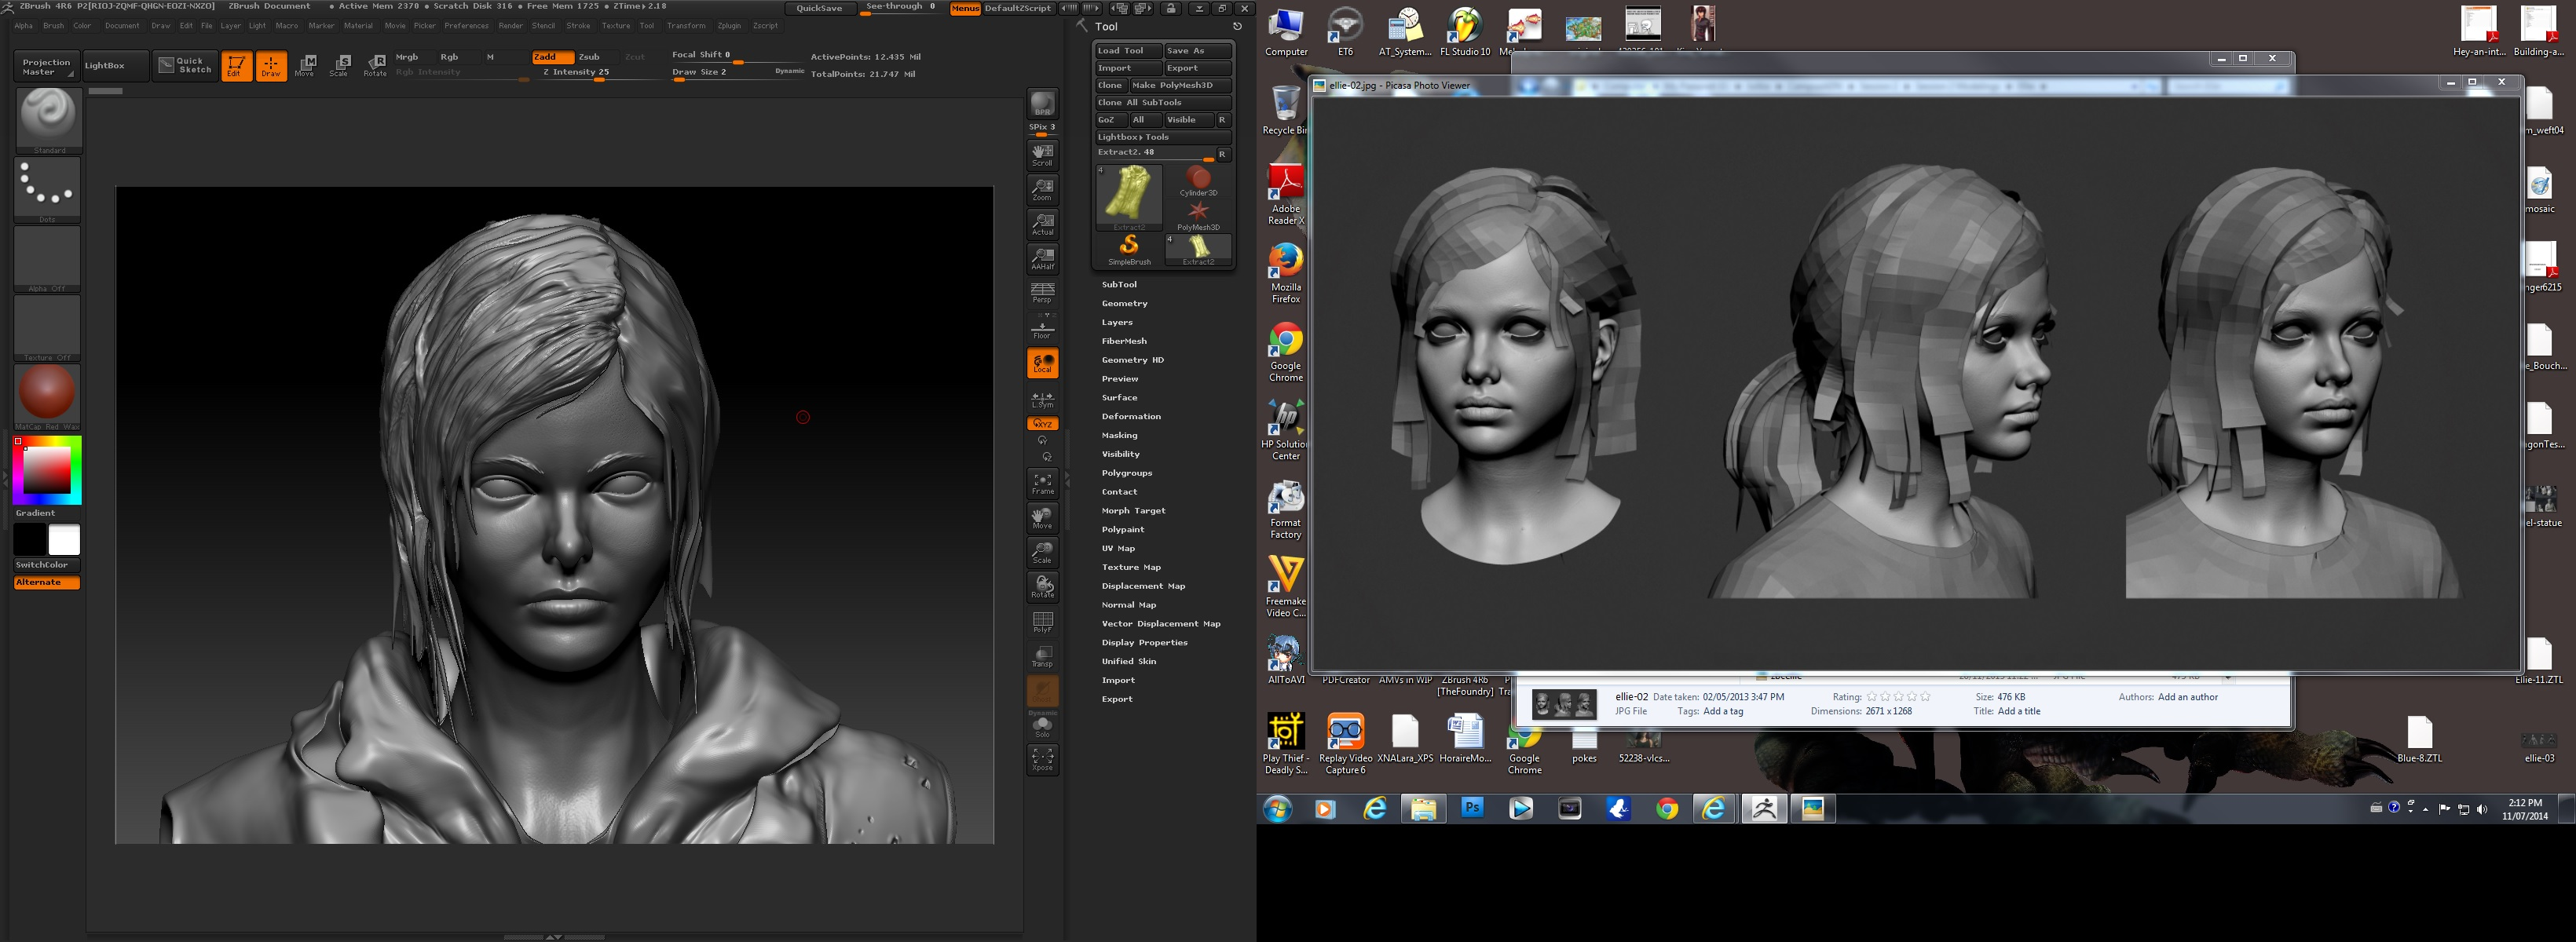 ellie_from_last_of_us___3d_sculpting_zbrush_wip_1_by_julika_nagara-d7q8m5c